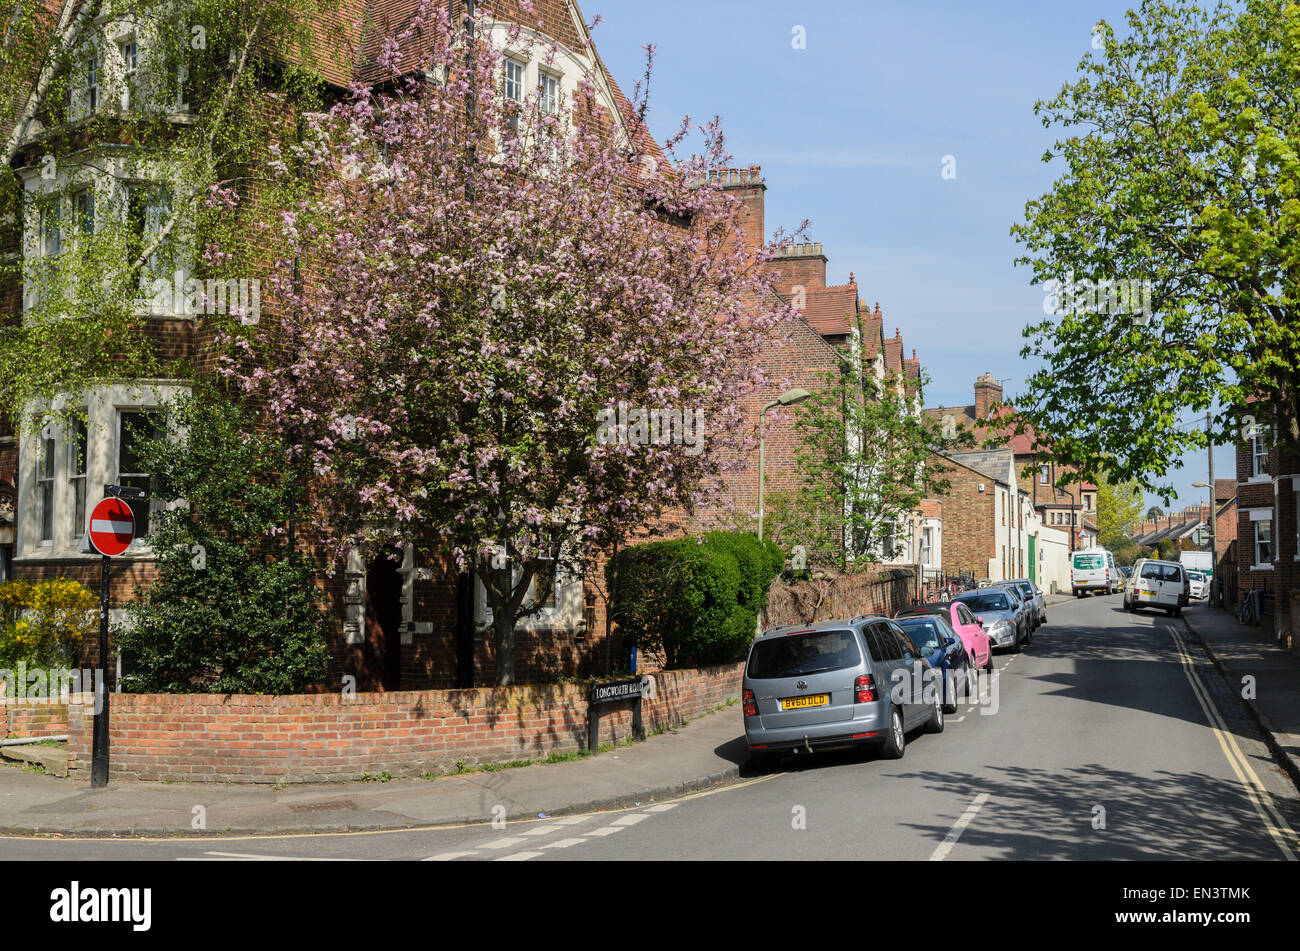 Longworth Road, a residential street in the Jericho area of Oxford - Stock Image